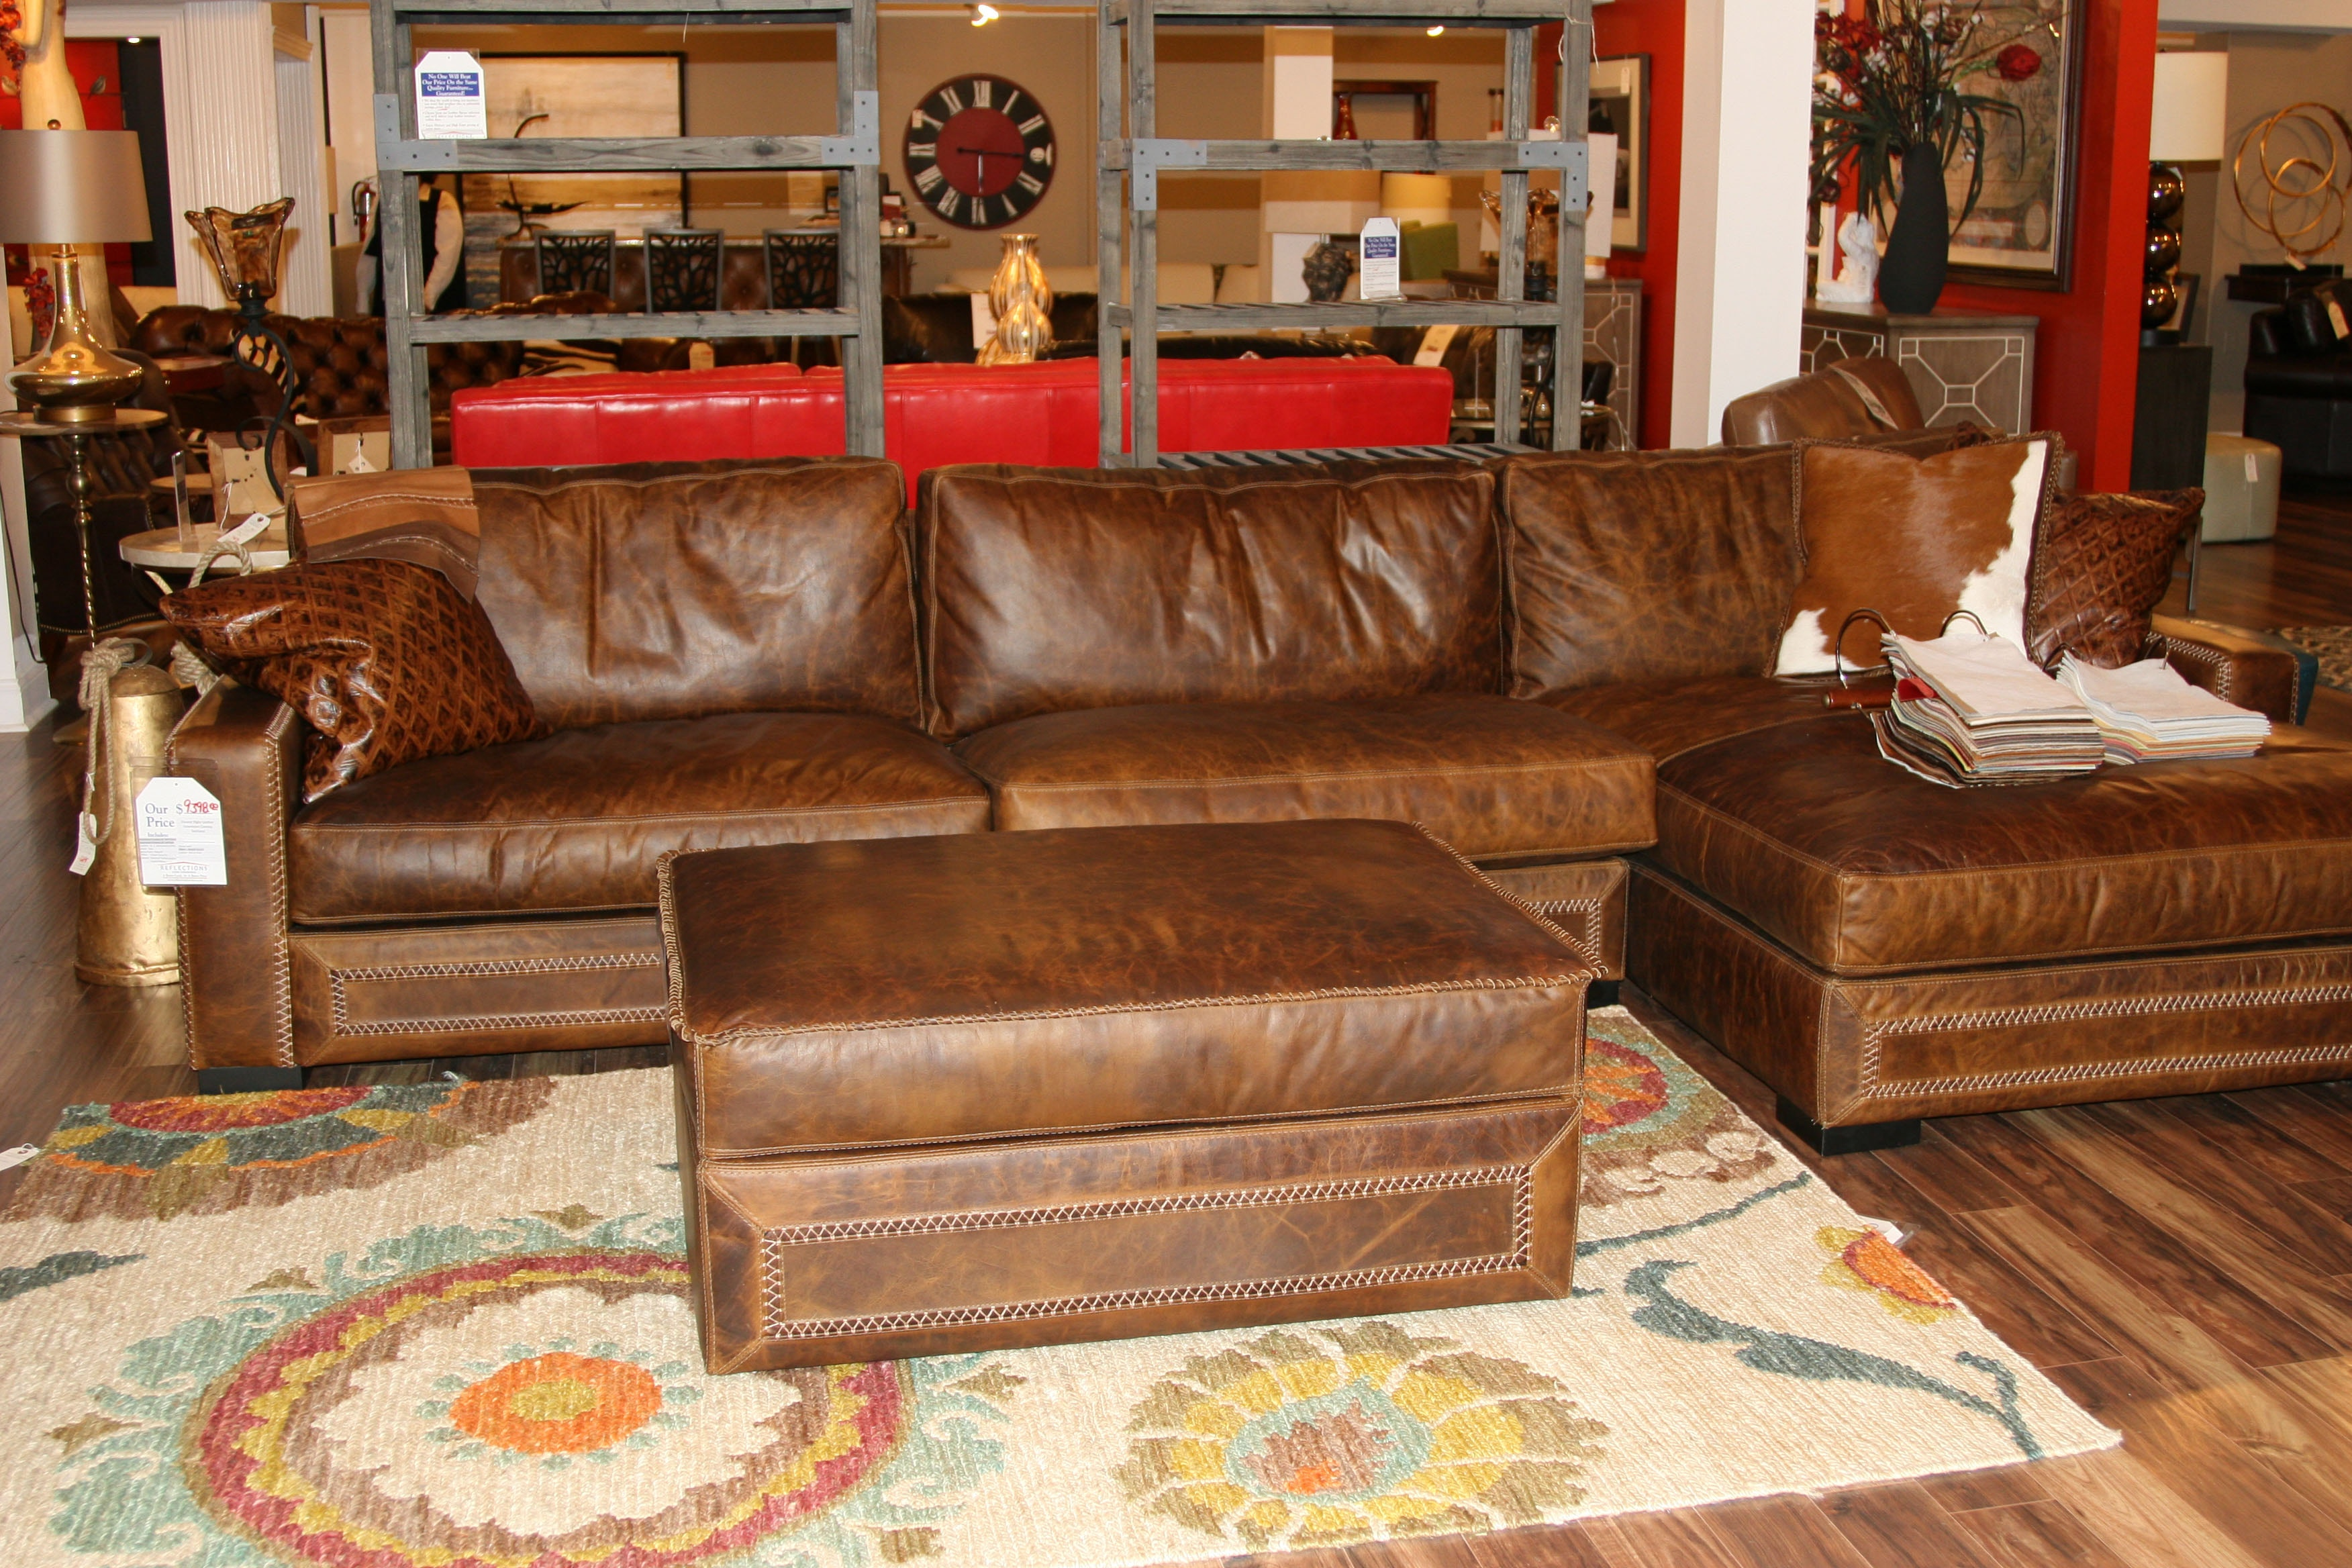 Nice Eleanor Rigby By Reflections Leather Sectional And Storage Ottoman By Eleanor  Rigby Leather Downtown 2